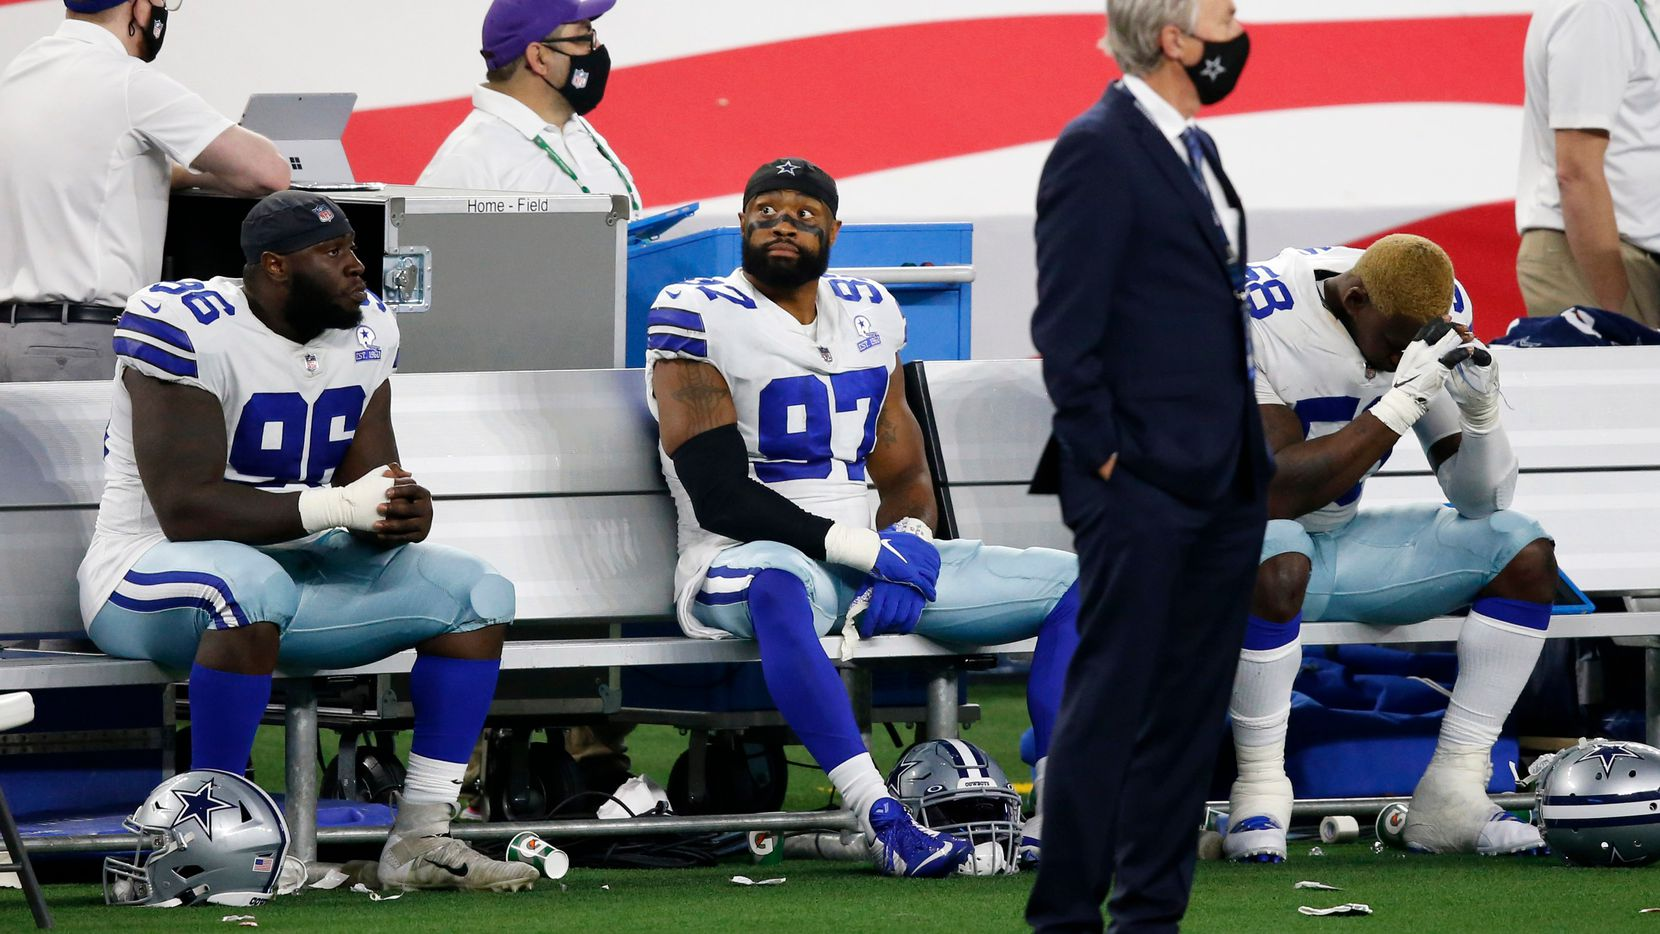 Dallas Cowboys defensive tackle Neville Gallimore (96), Dallas Cowboys defensive end Everson Griffen (97) and Dallas Cowboys defensive end Aldon Smith (58) sit on the bench late in the fourth quarter of play at AT&T Stadium on Monday, October 19, 2020 in Arlington, Texas. The Dallas Cowboys lost to the Arizona Cardinals 38-10.